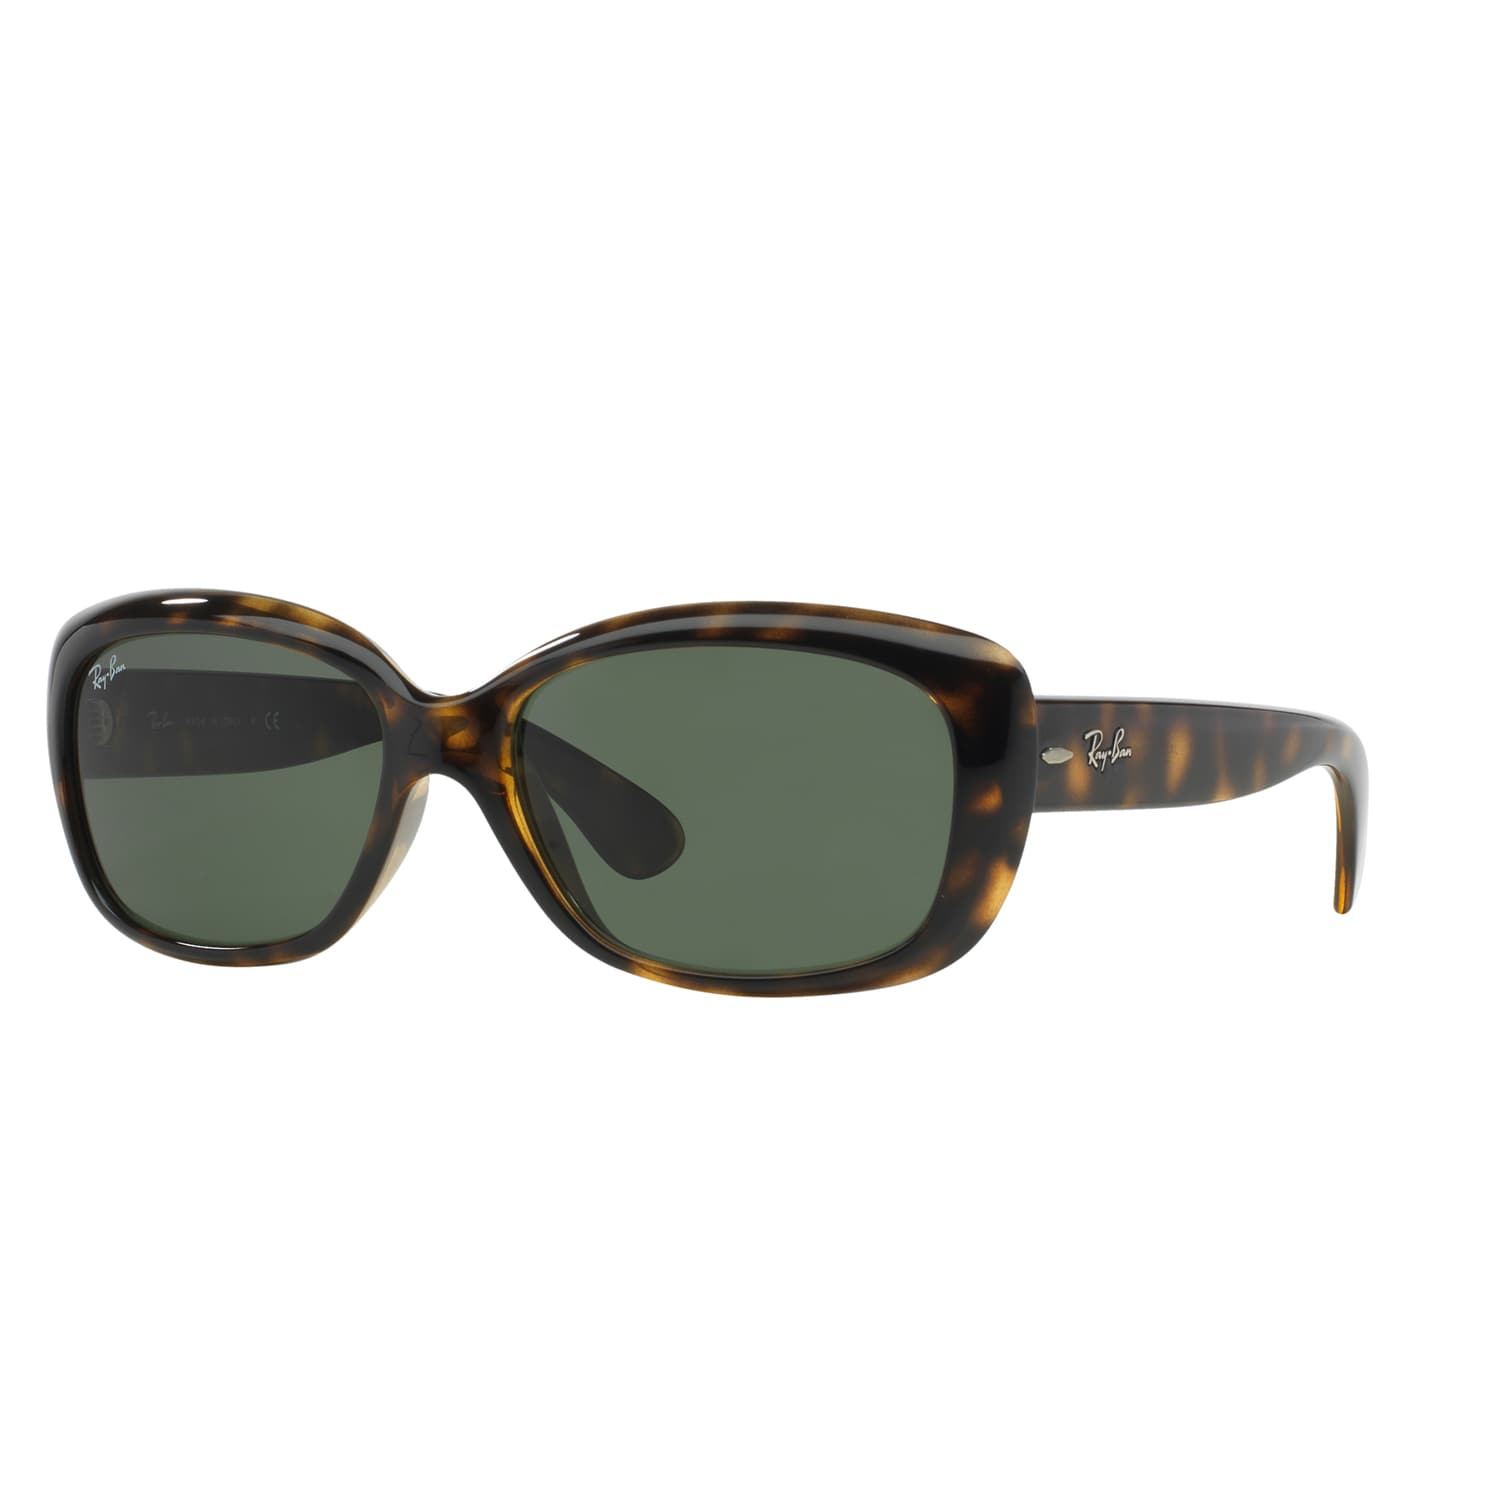 Ray-Ban Jackie Ohh RB4101 58mm Rectangle Sunglasses